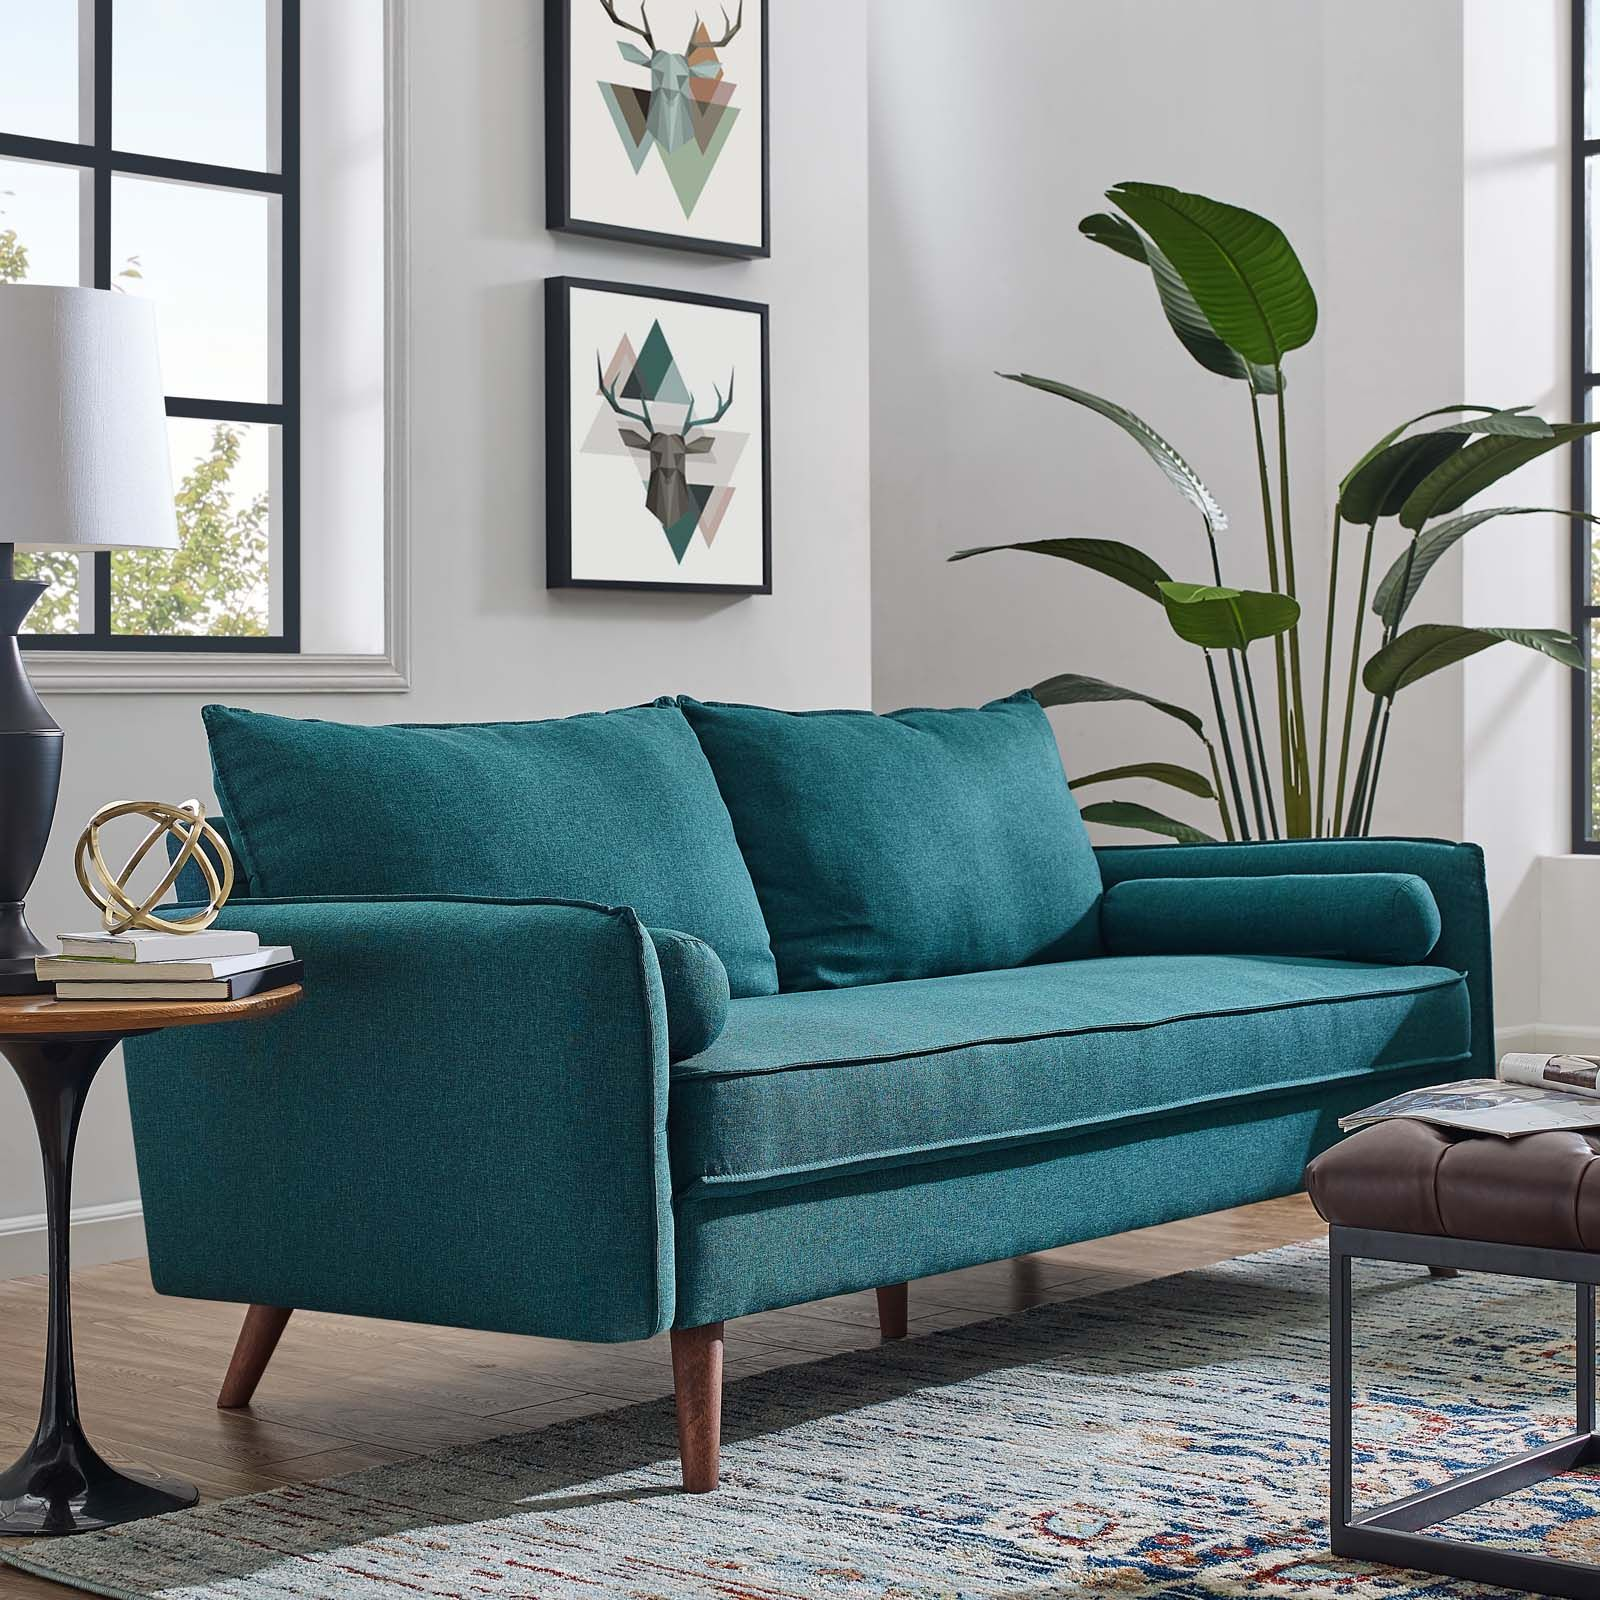 modway revive upholstered fabric sofa  teal sofa living